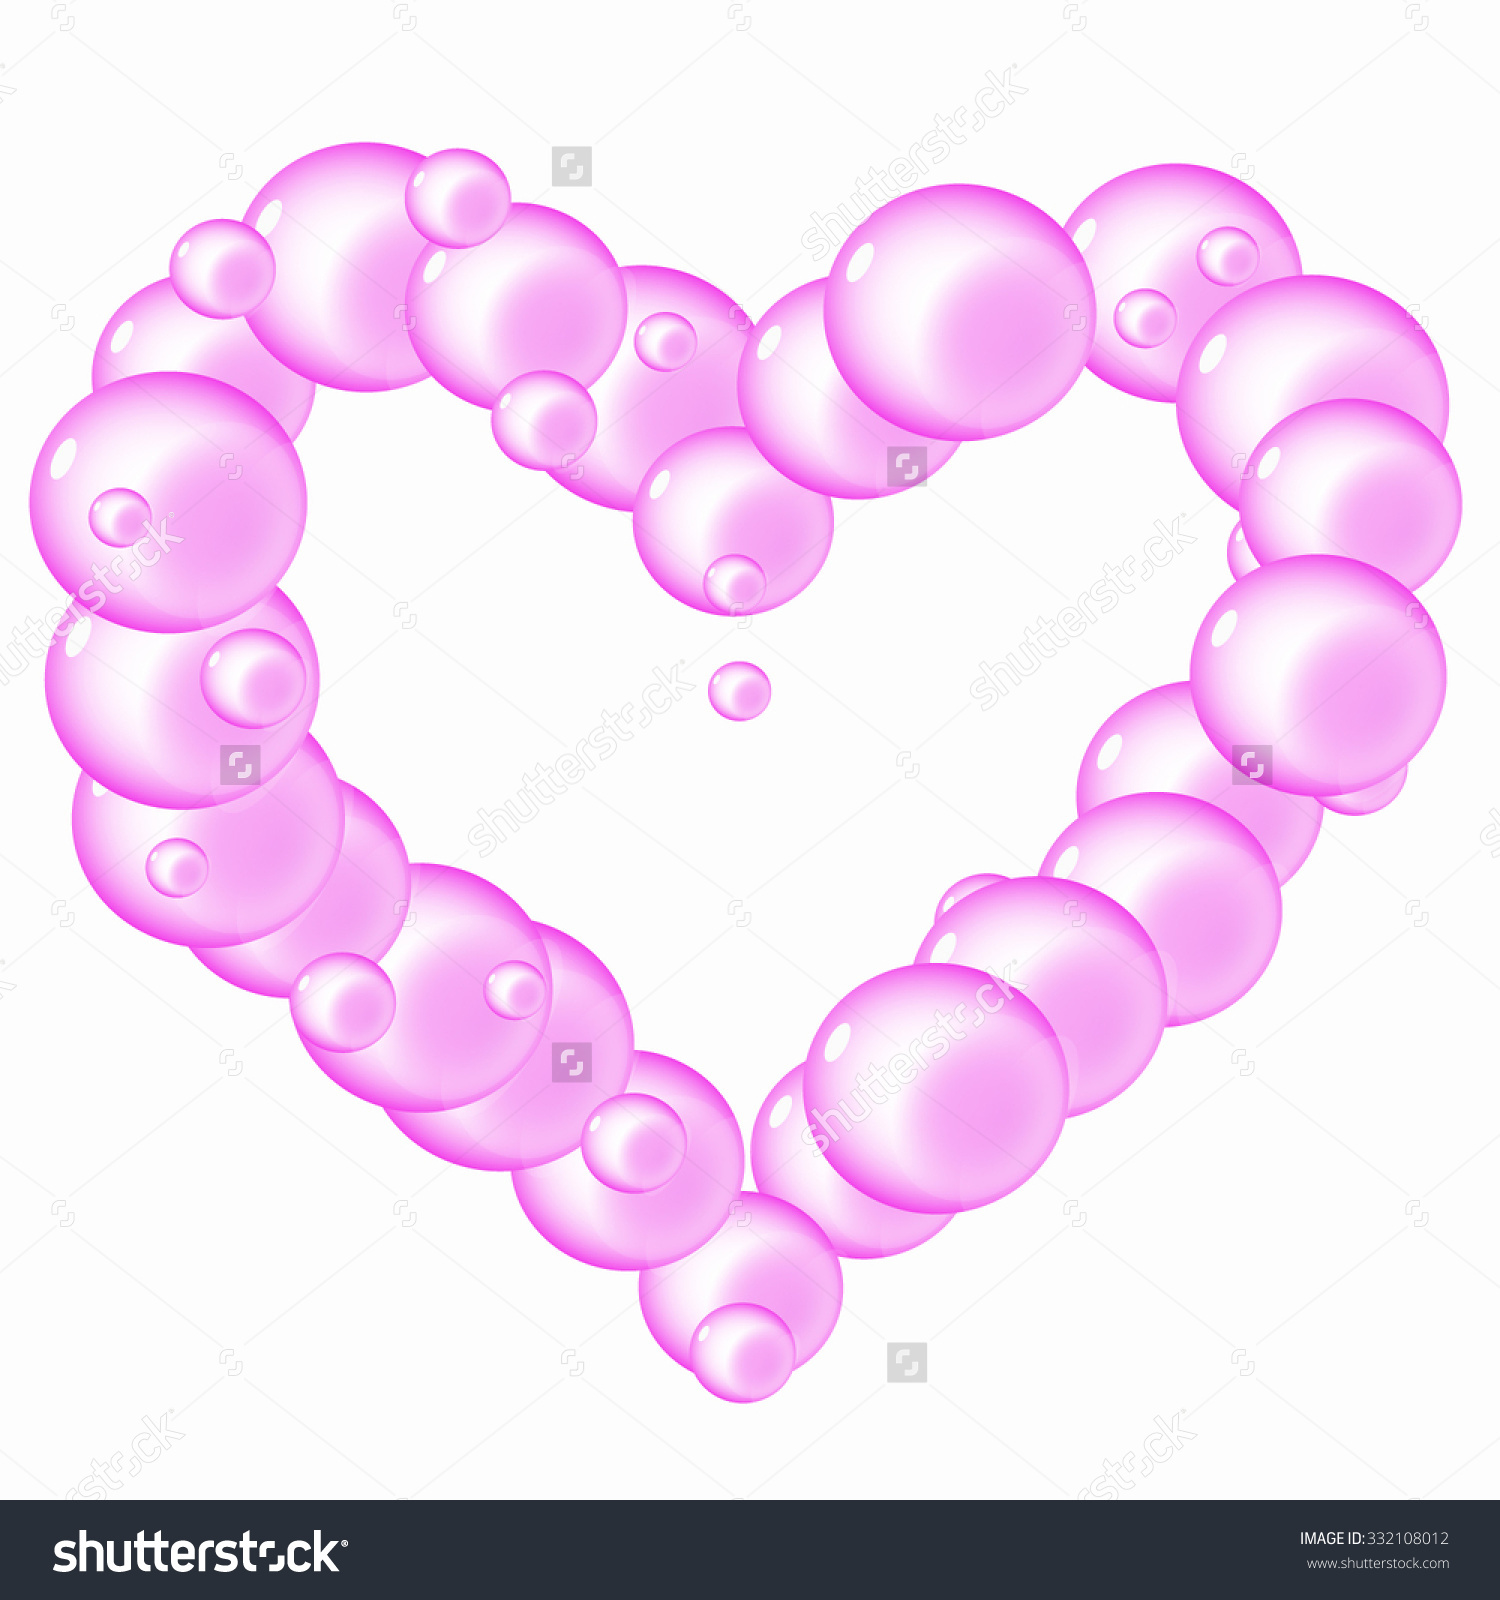 Translucent Soap Bubbles Flying Pink Heart Stock Vector 332108012.